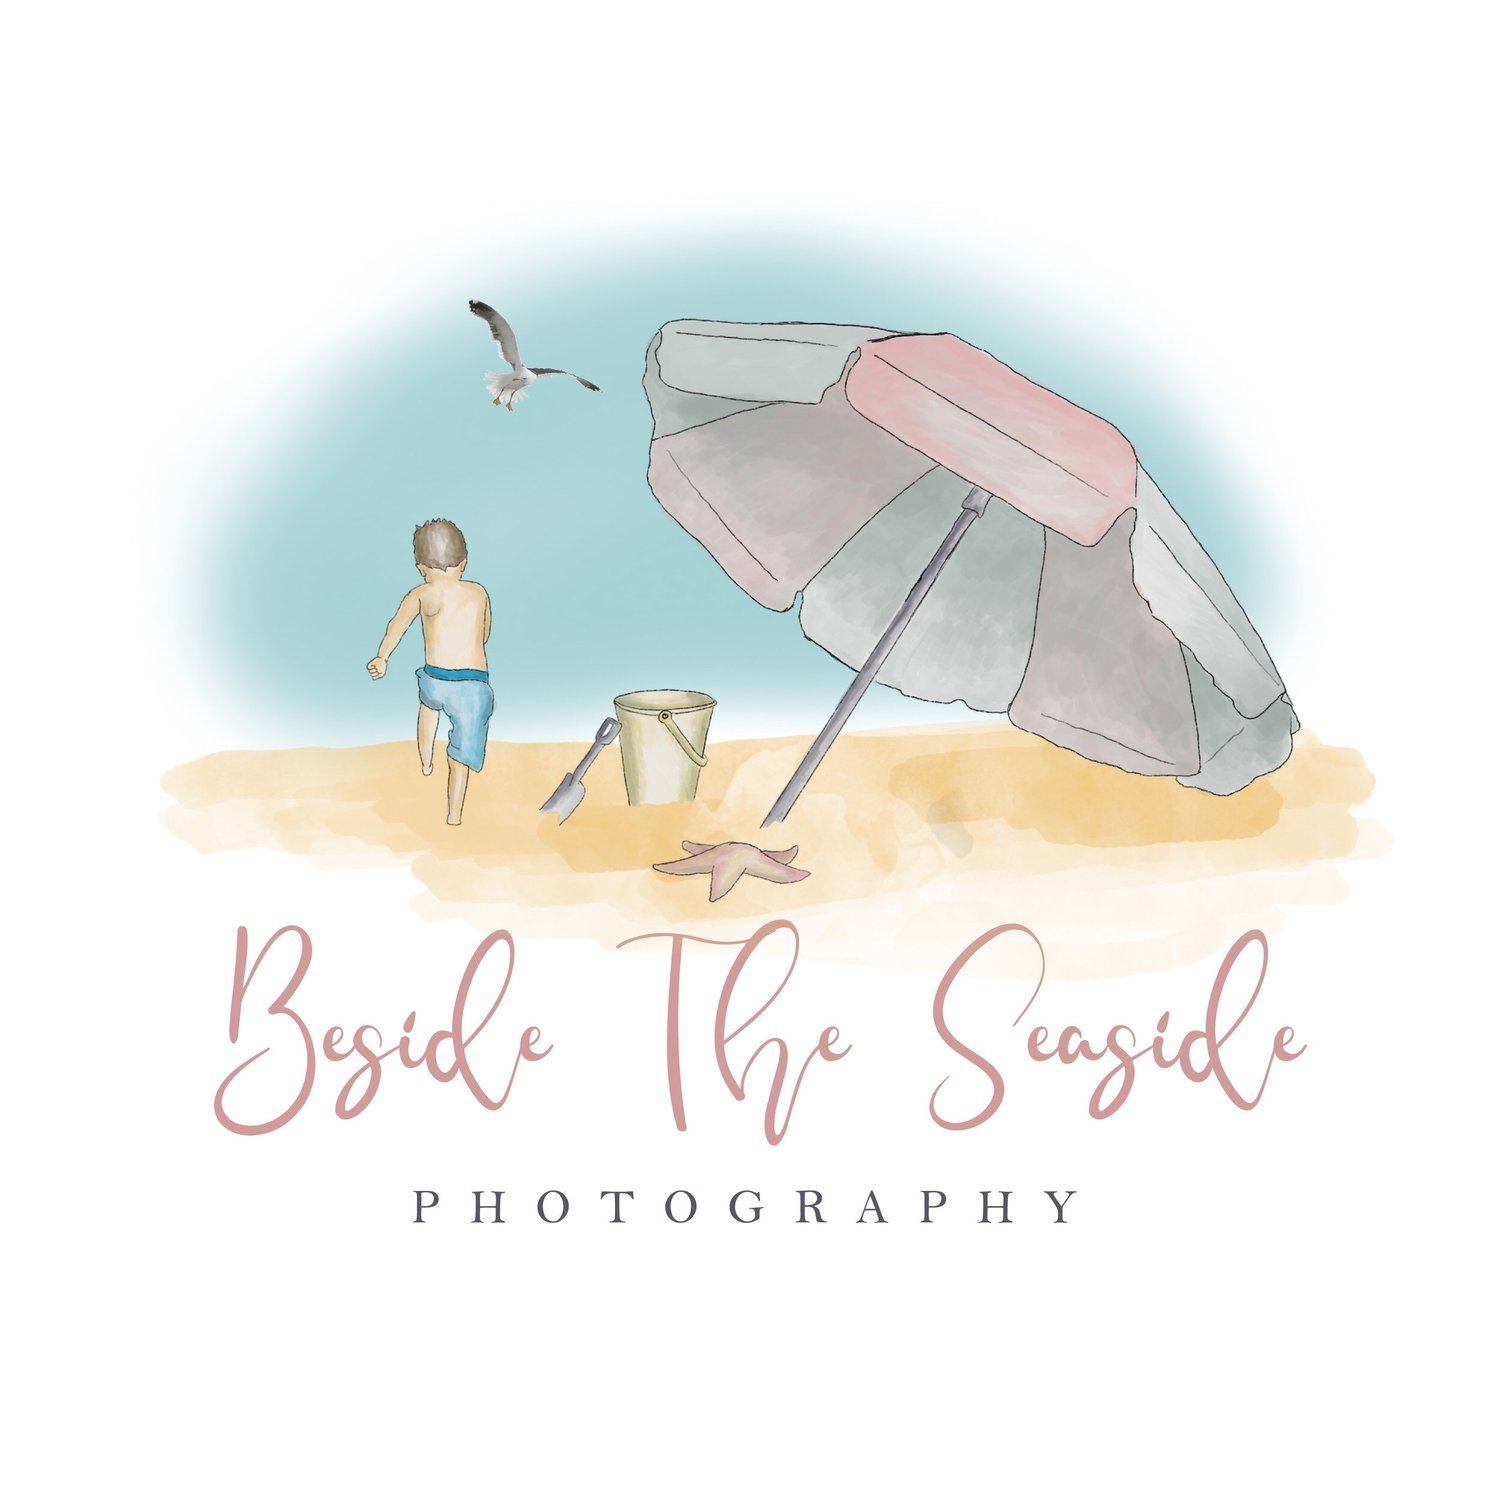 Beside The Seaside Photography